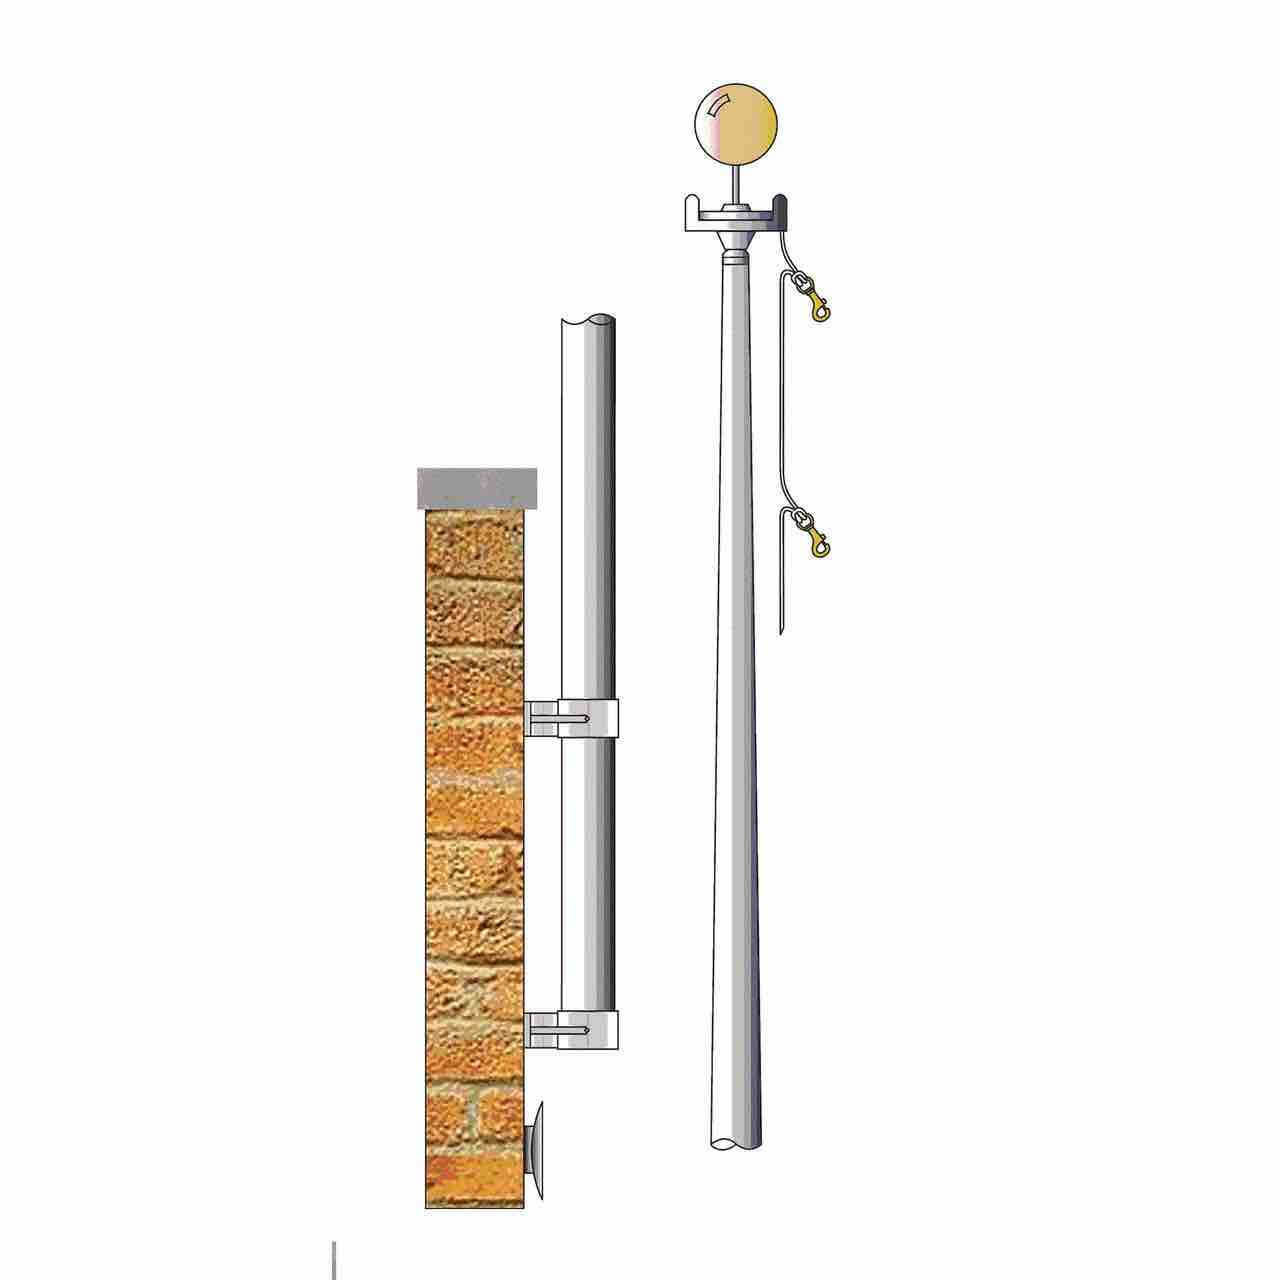 17 Vertical Wall Mounted Flagpole EVWS17